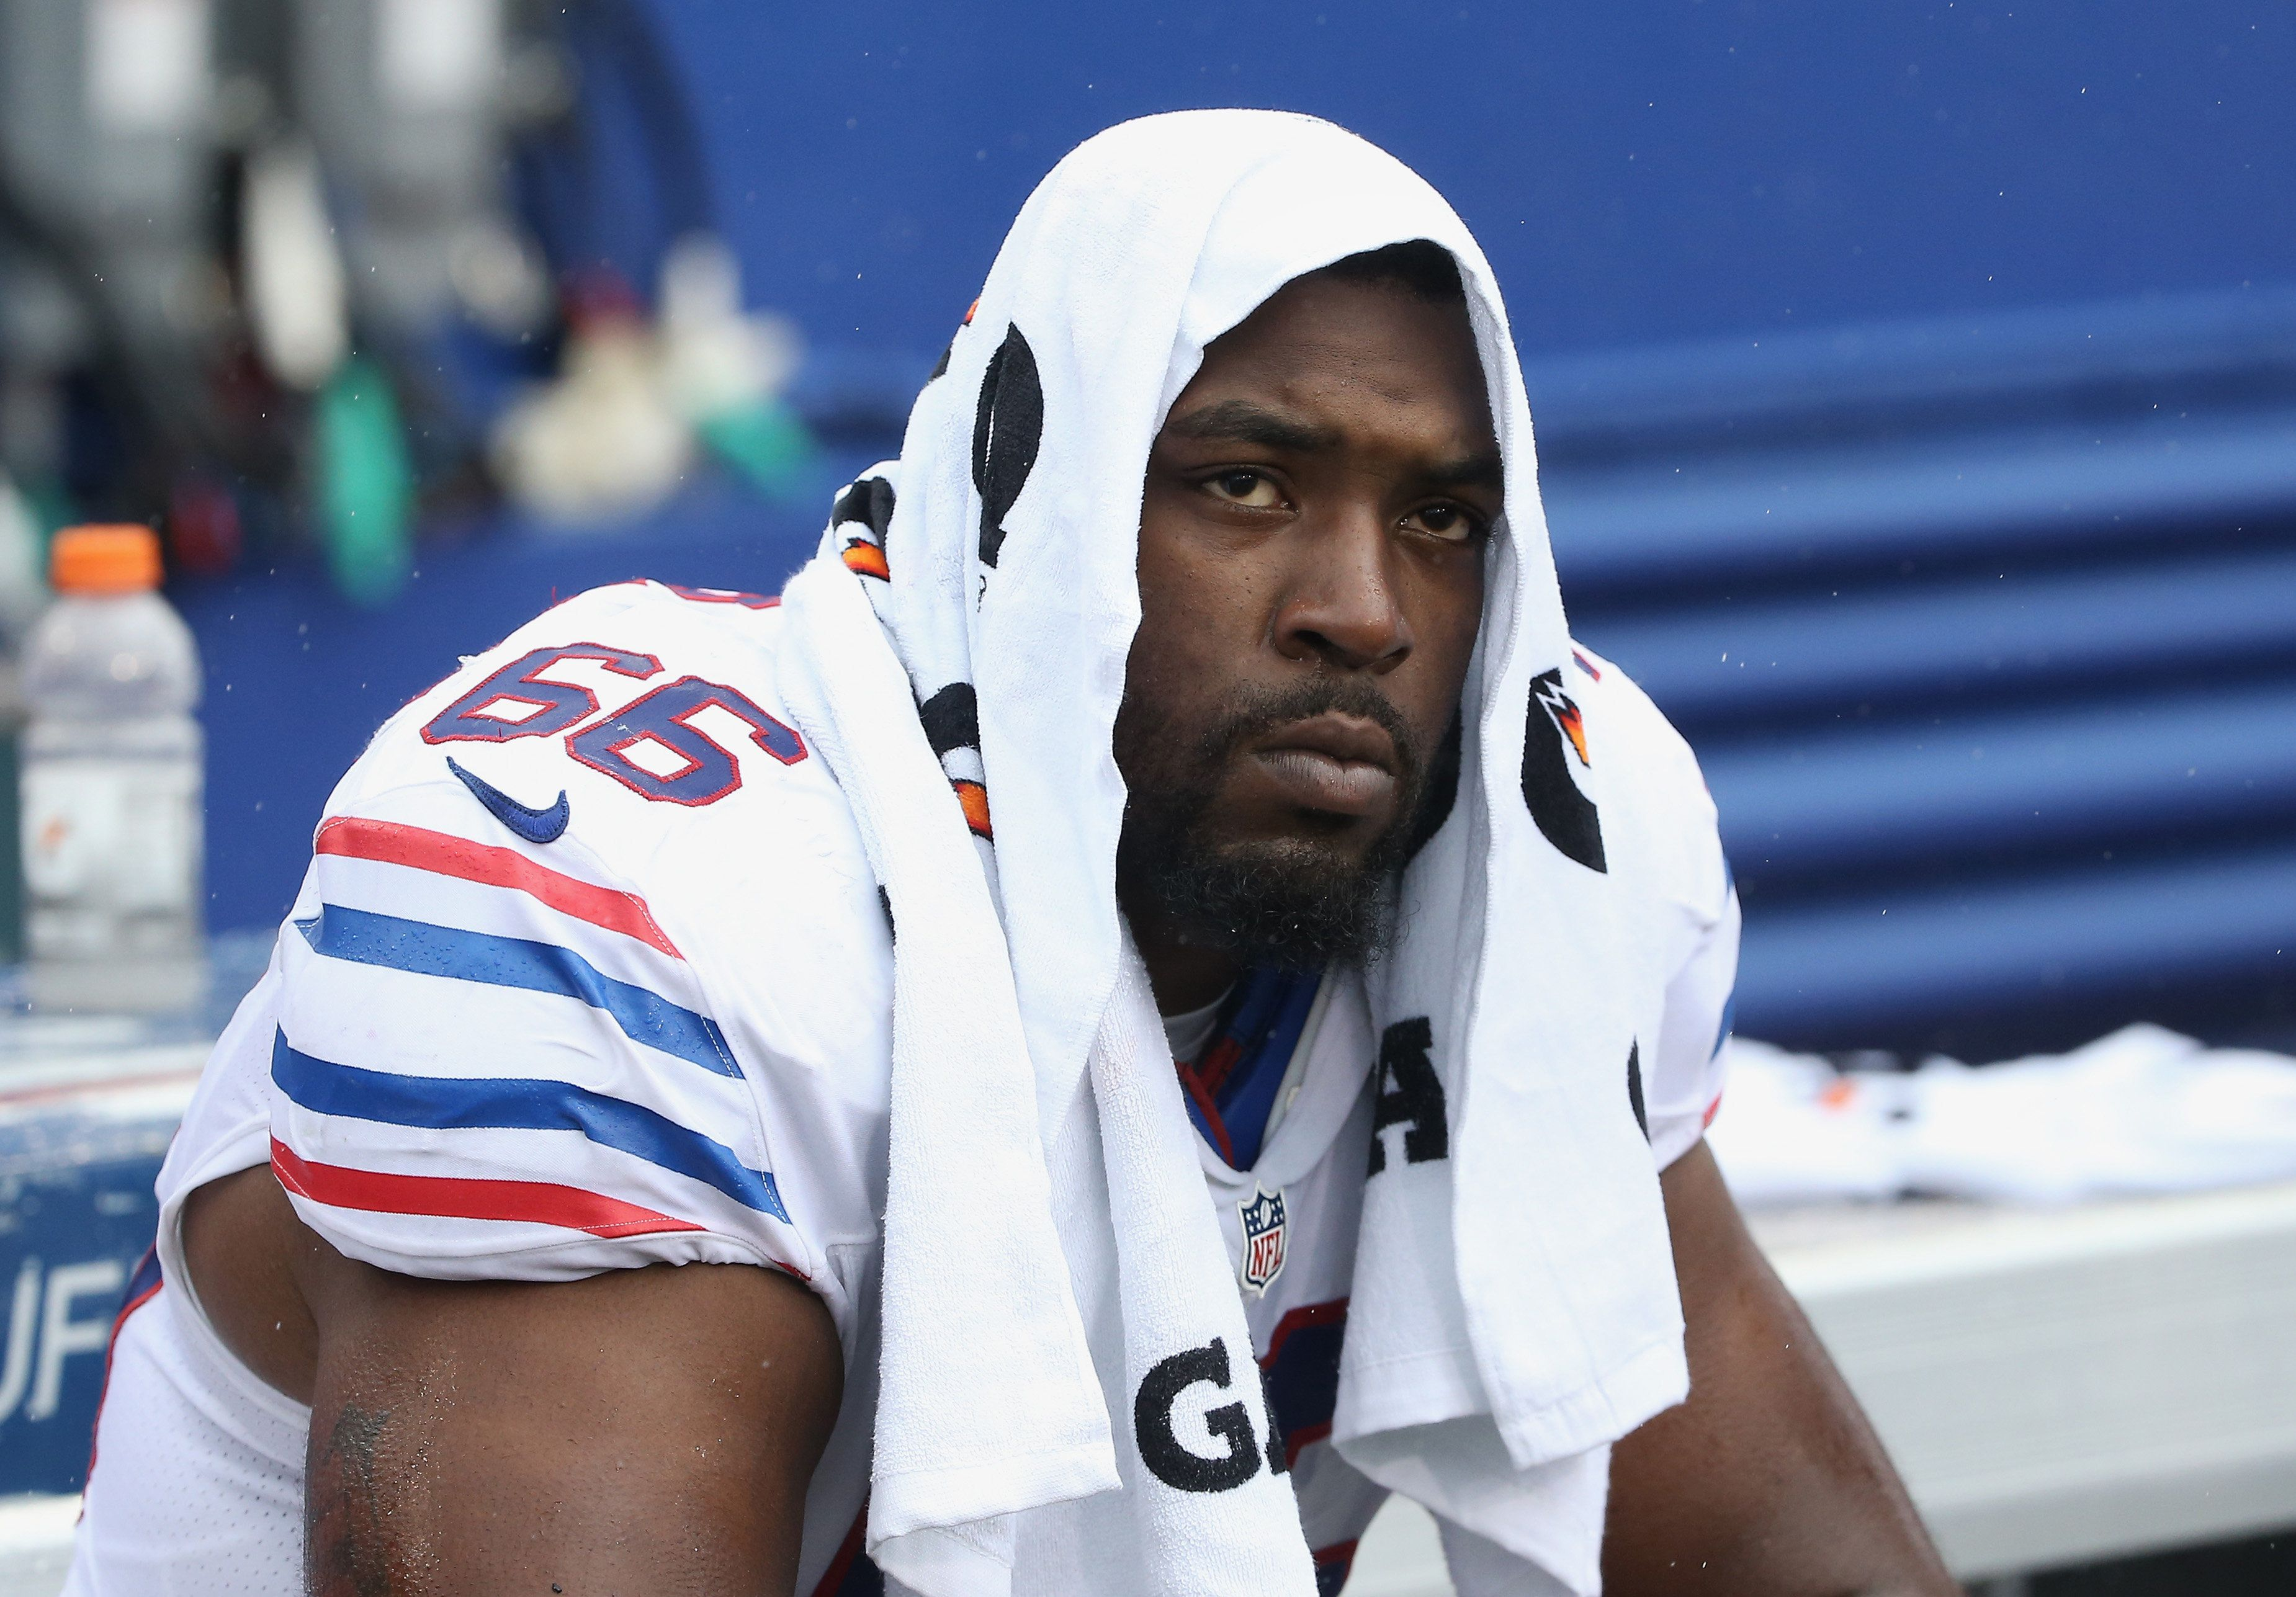 ORCHARD PARK, NY - SEPTEMBER 13: Seantrel Henderson #66 of the Buffalo Bills looks on from the bench during NFL game action against the Indianapolis Colts at Ralph Wilson Stadium on September 13, 2015 in Orchard Park, New York. (Photo by Tom Szczerbowski/Getty Images)